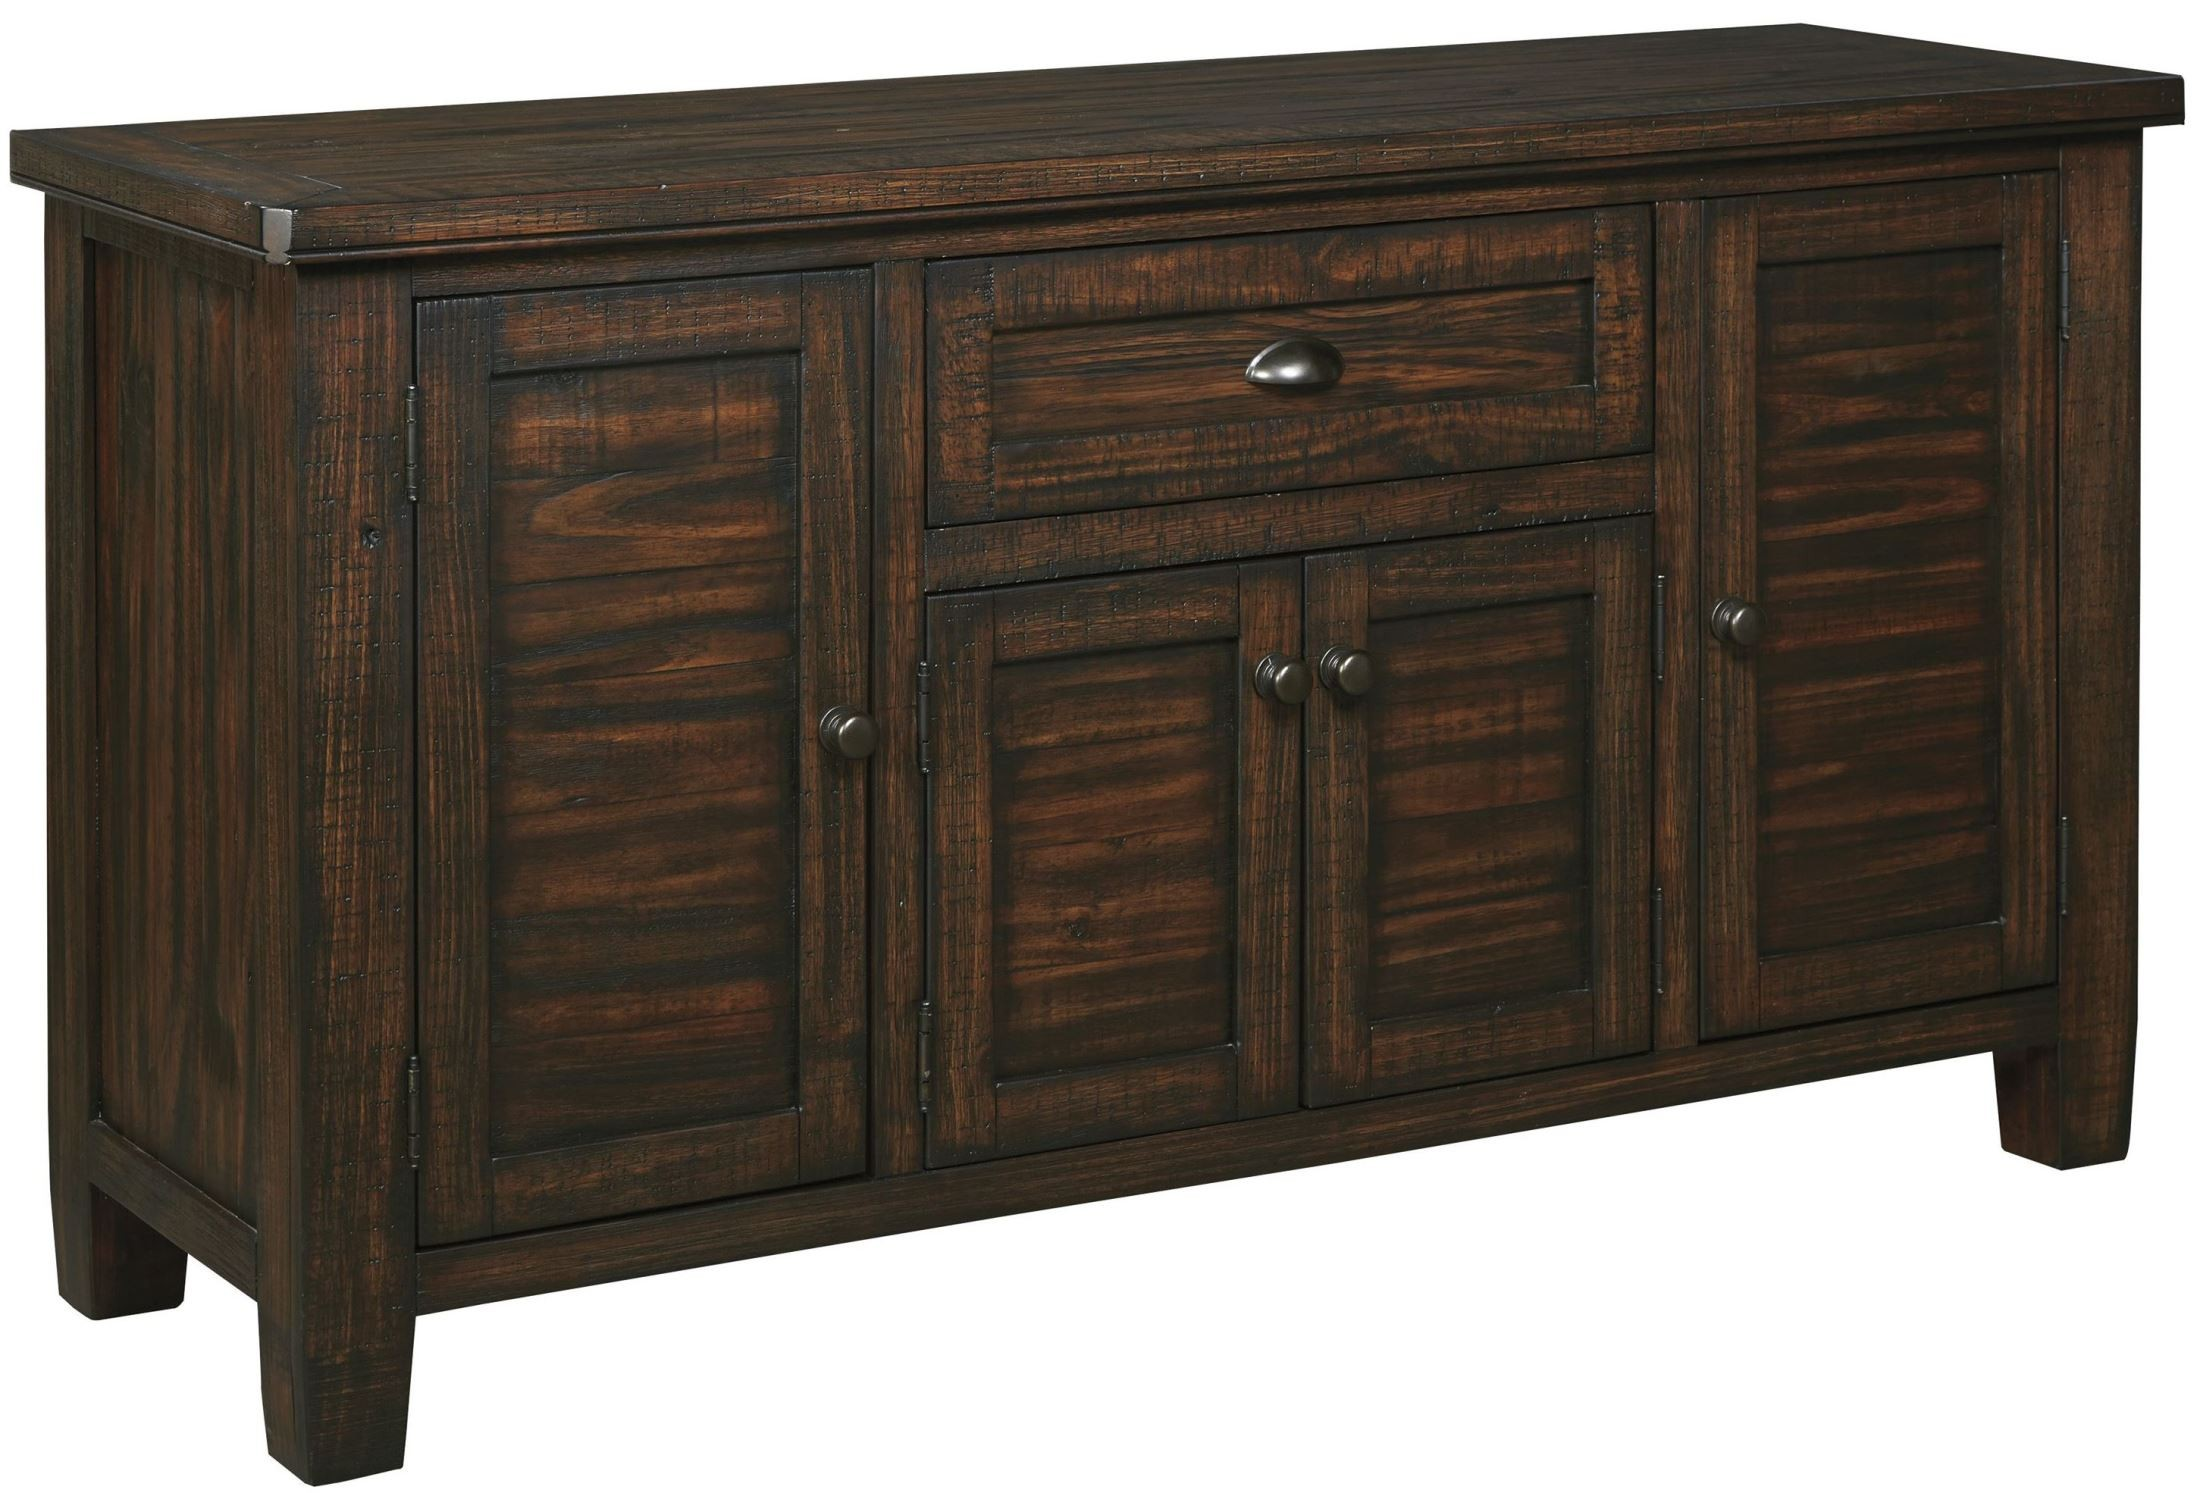 Trudell Dark Brown Dining Room Server From Ashley D658 60 Coleman Furniture